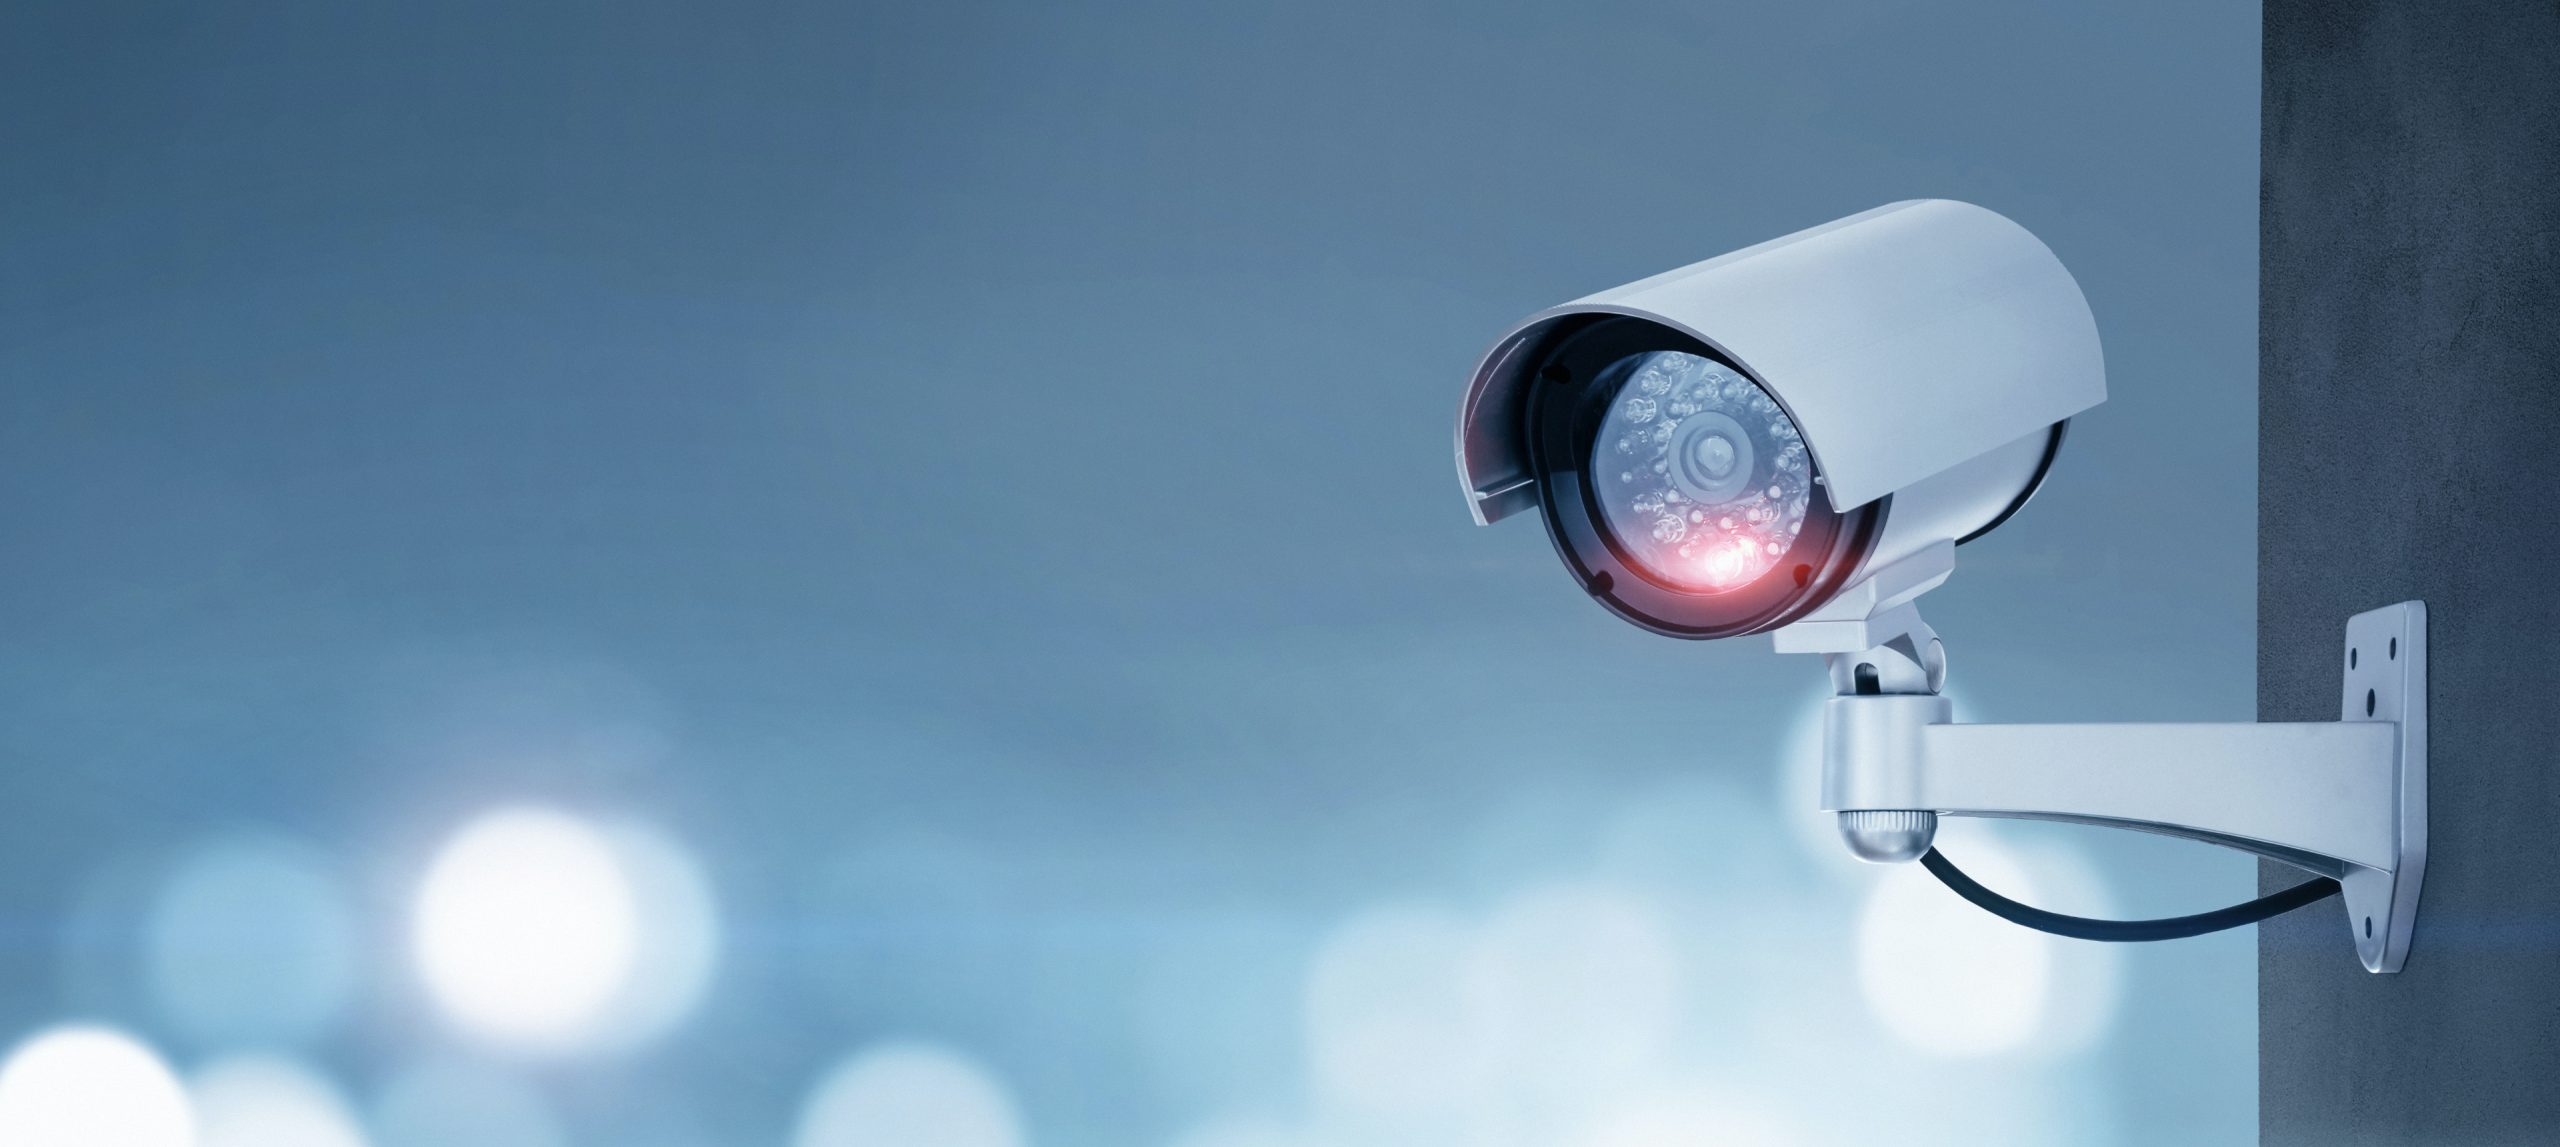 CCTV Security<br />Systems